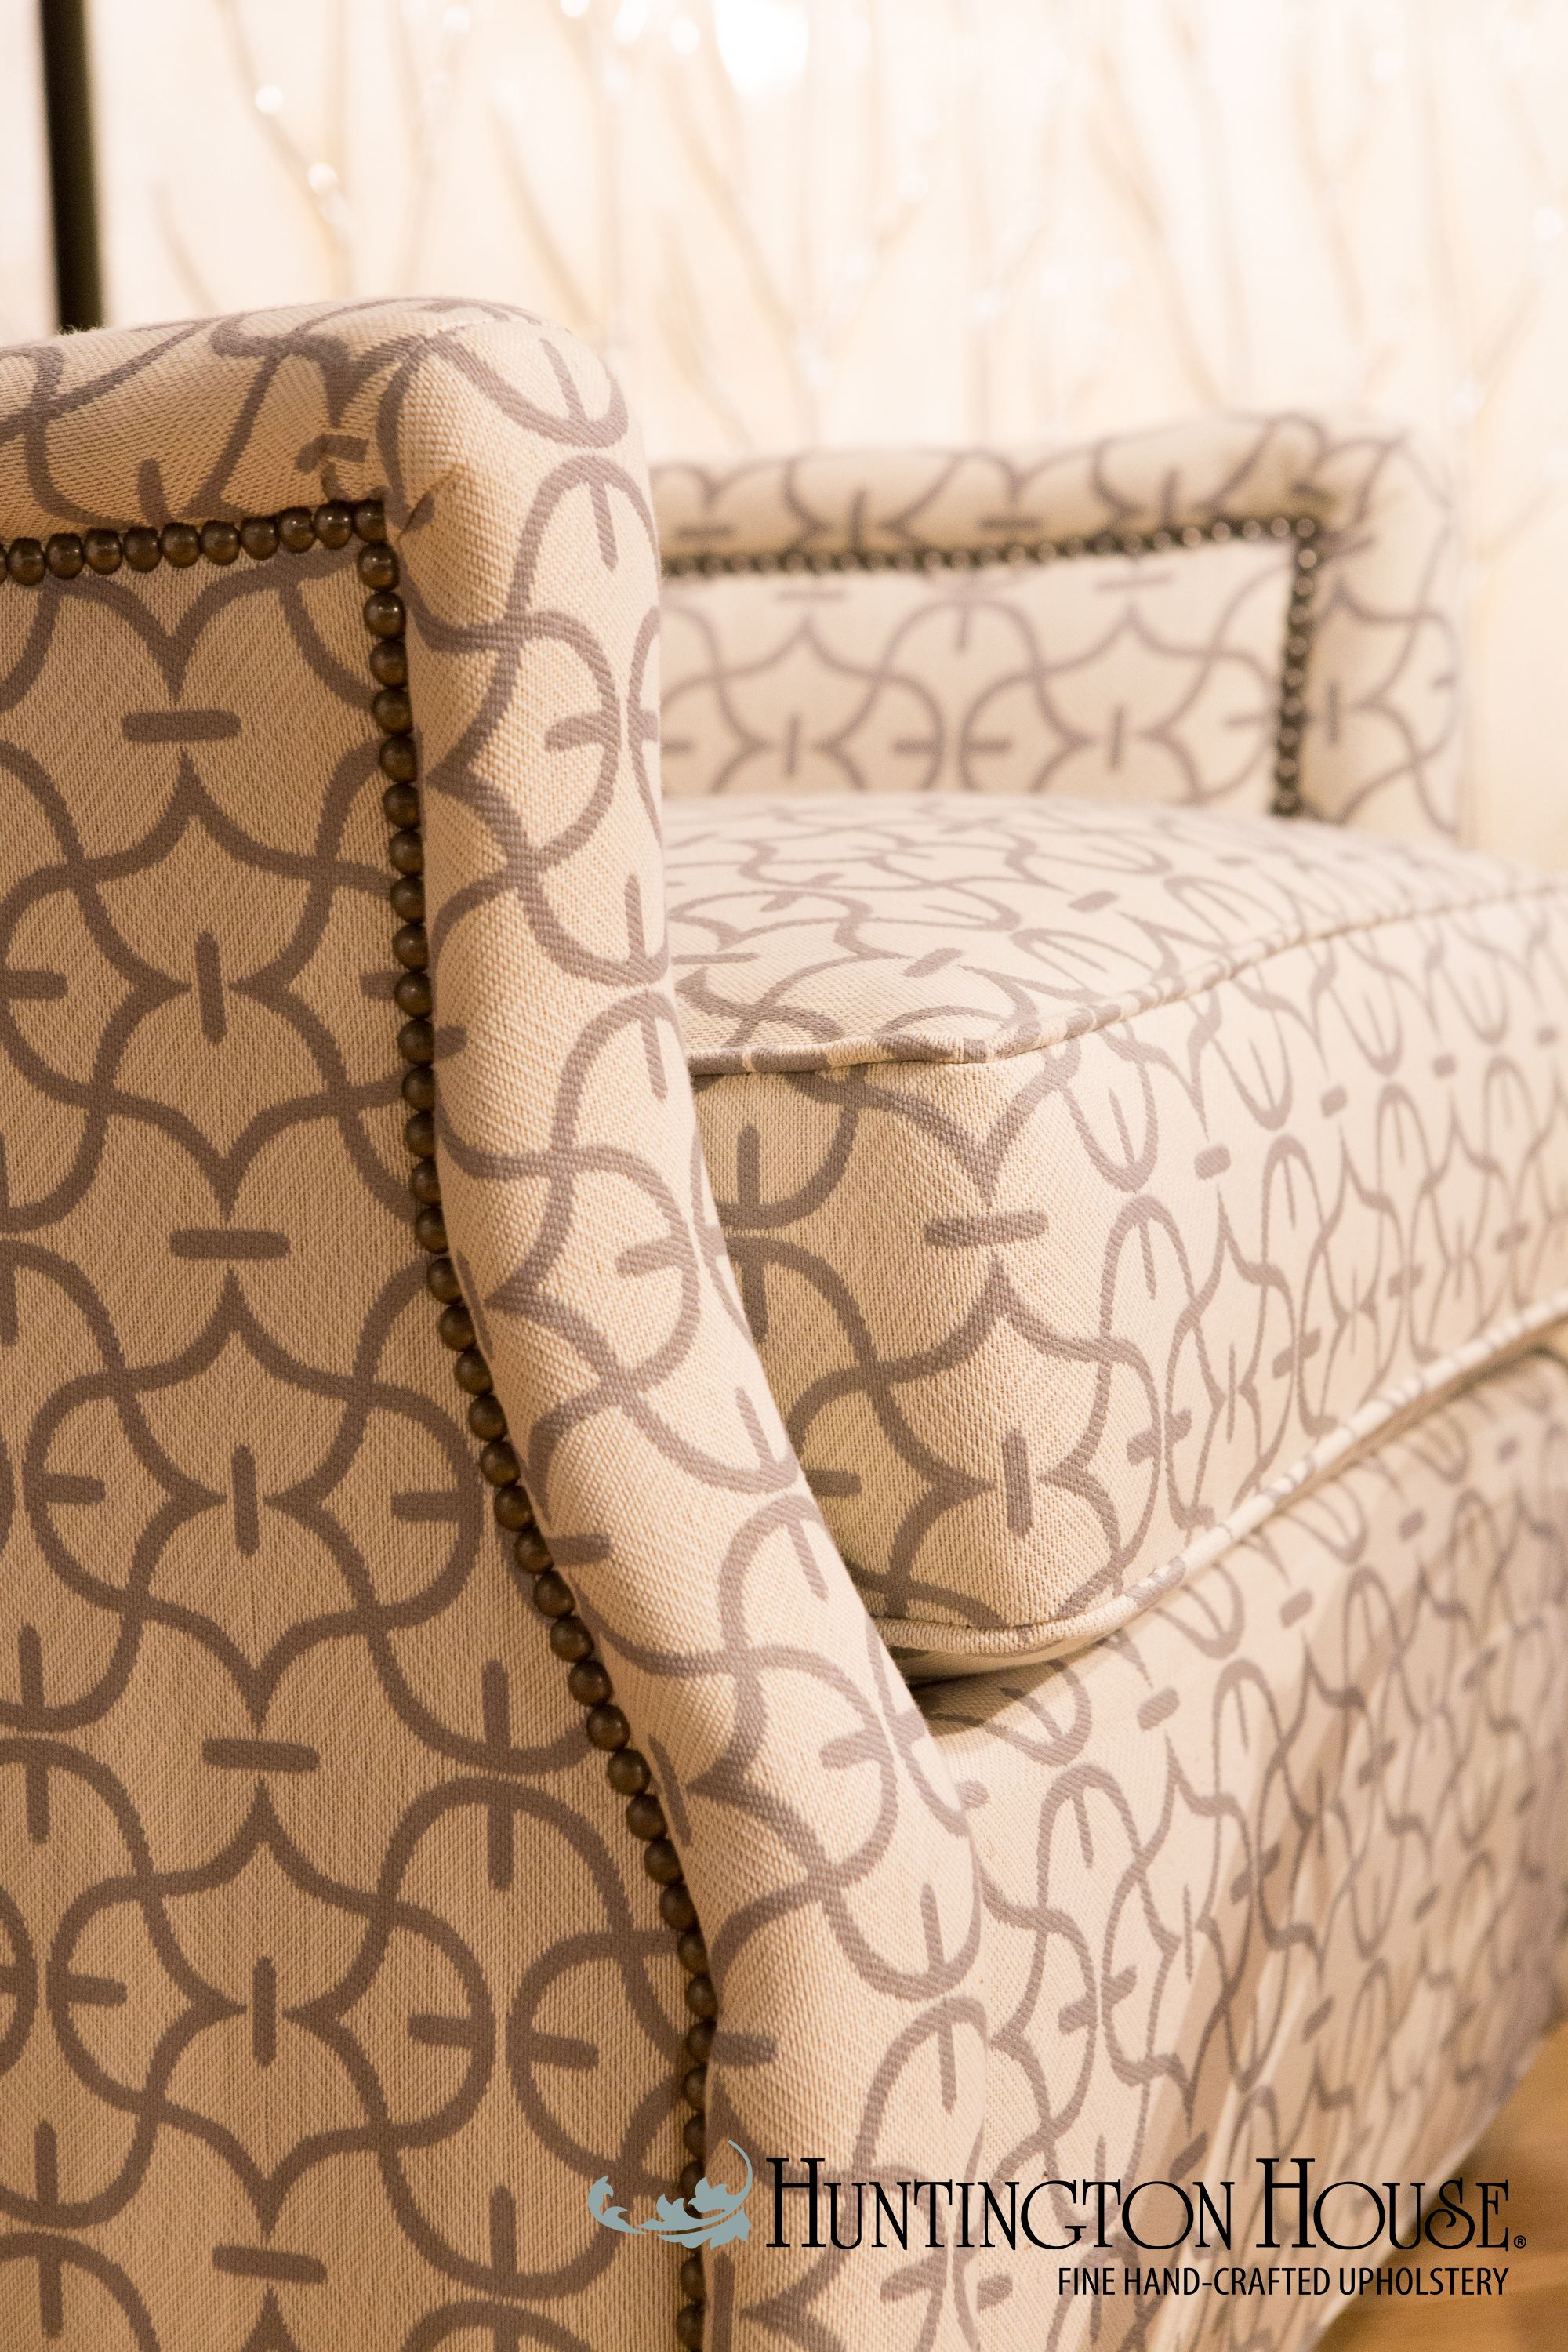 Nailhead trim helps define and accentuate the unique curves of